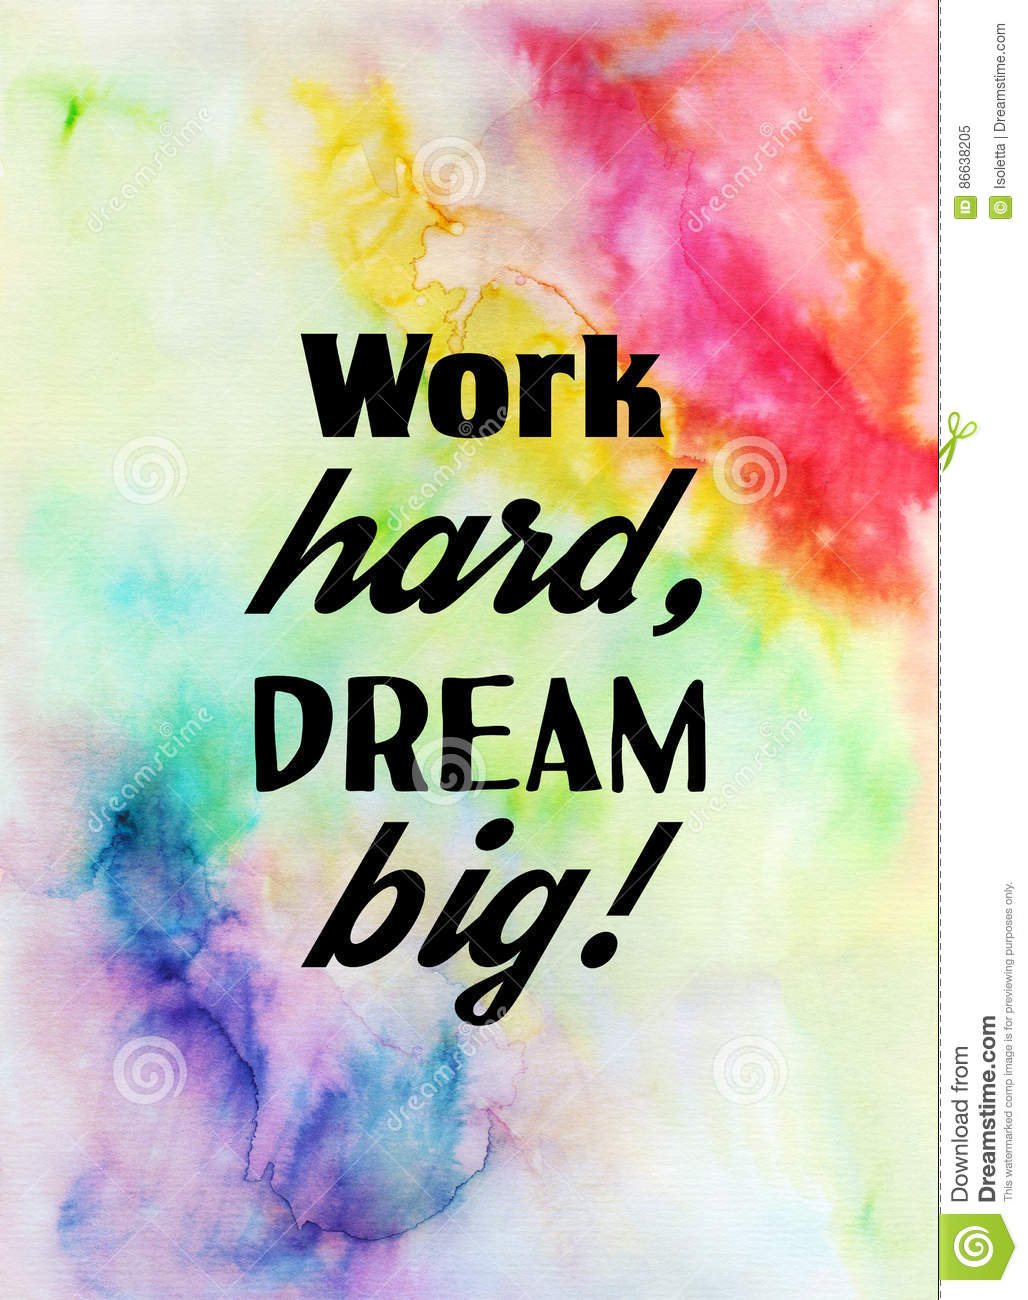 Work Hard Dream Big Motivational Quote On Watercolor Texture